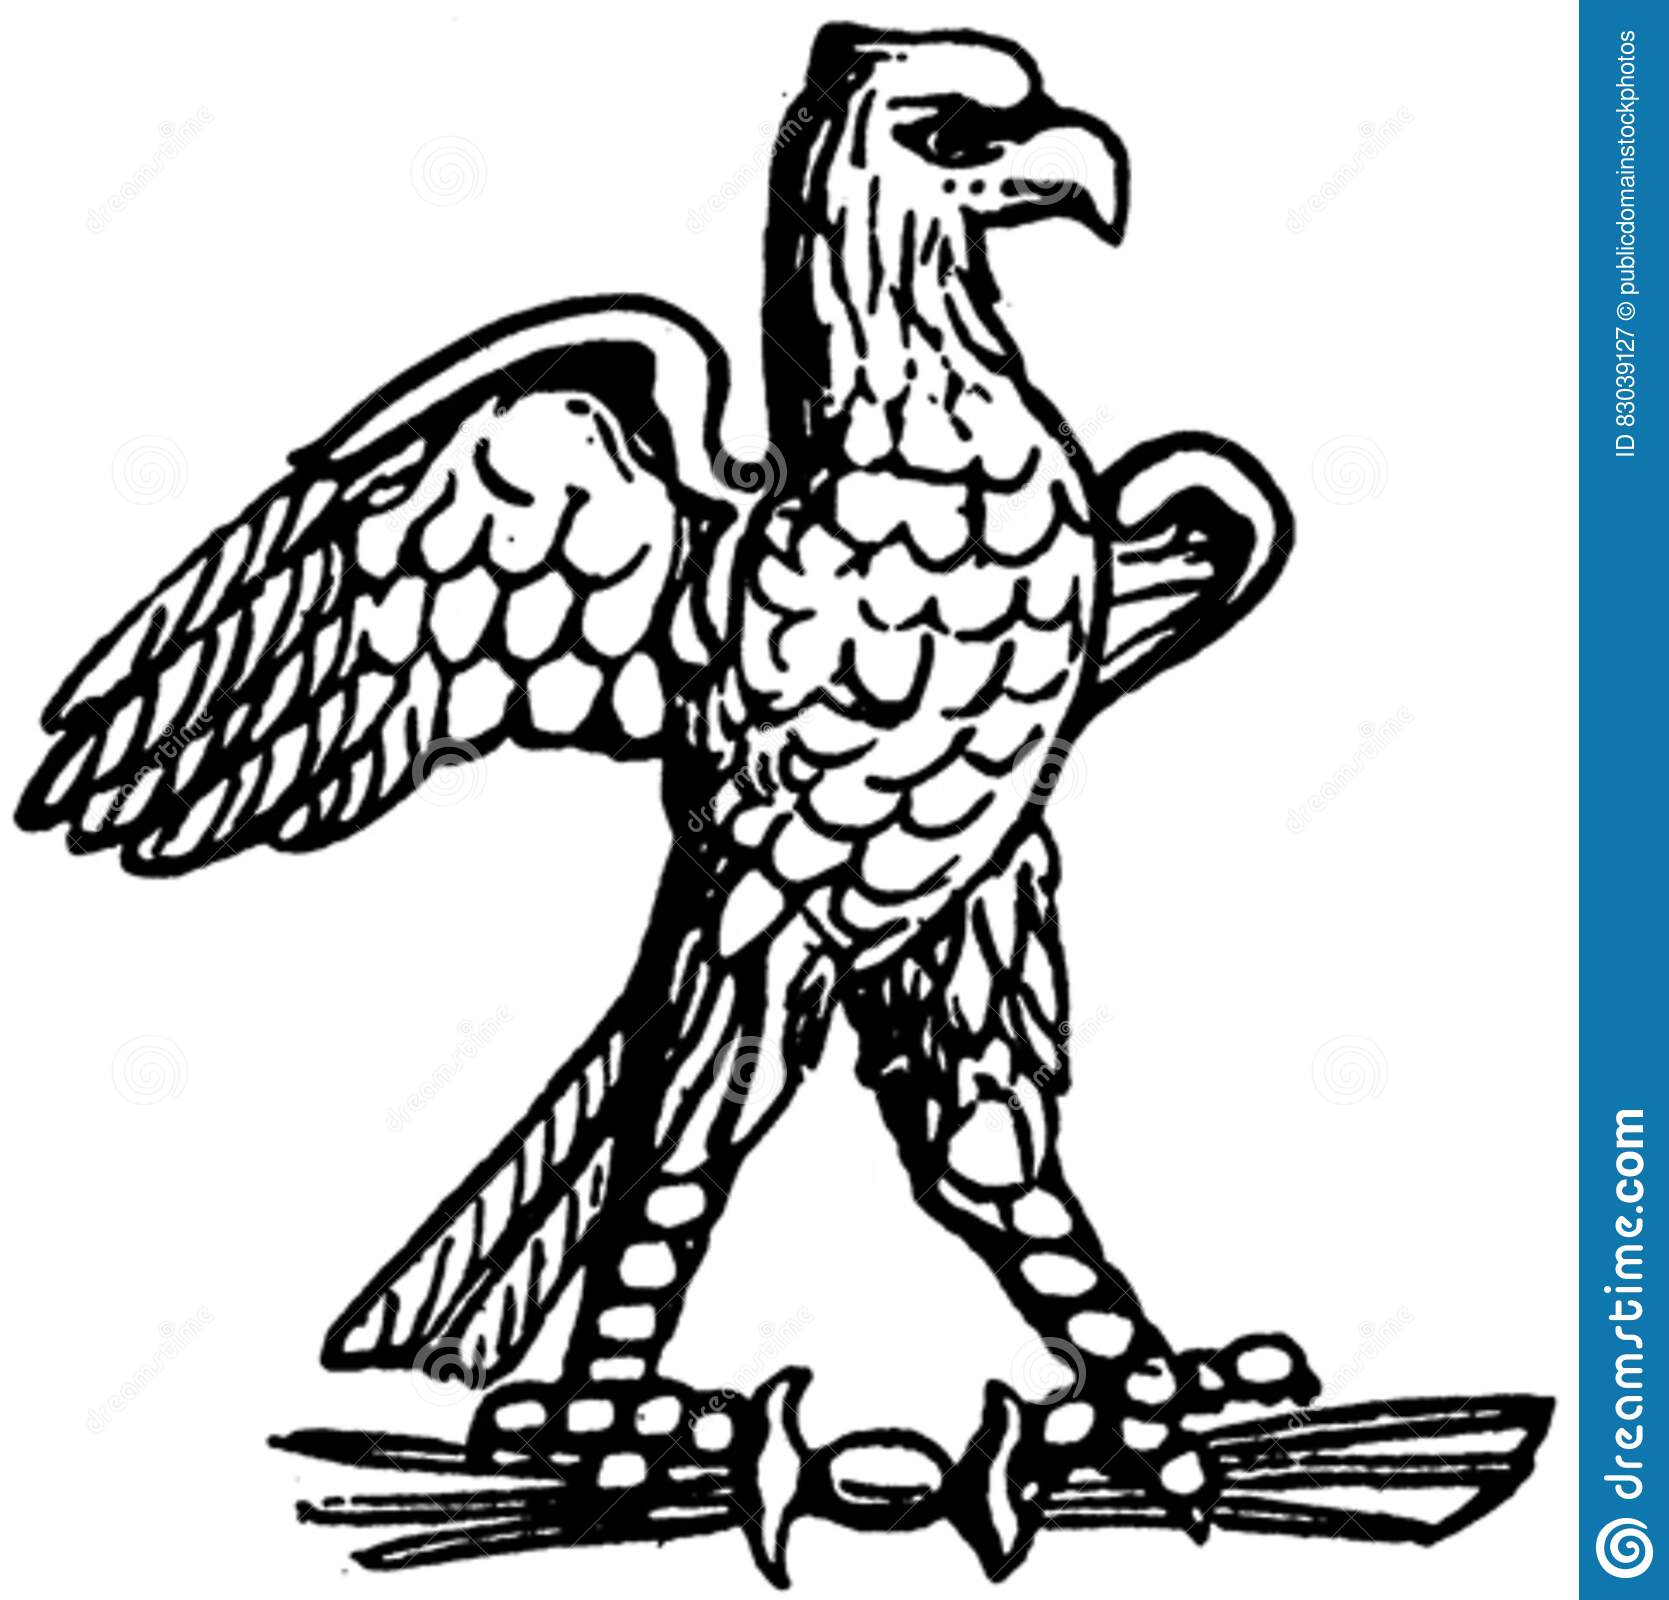 Download Aigle-008 stock image. Image of  - 83039127